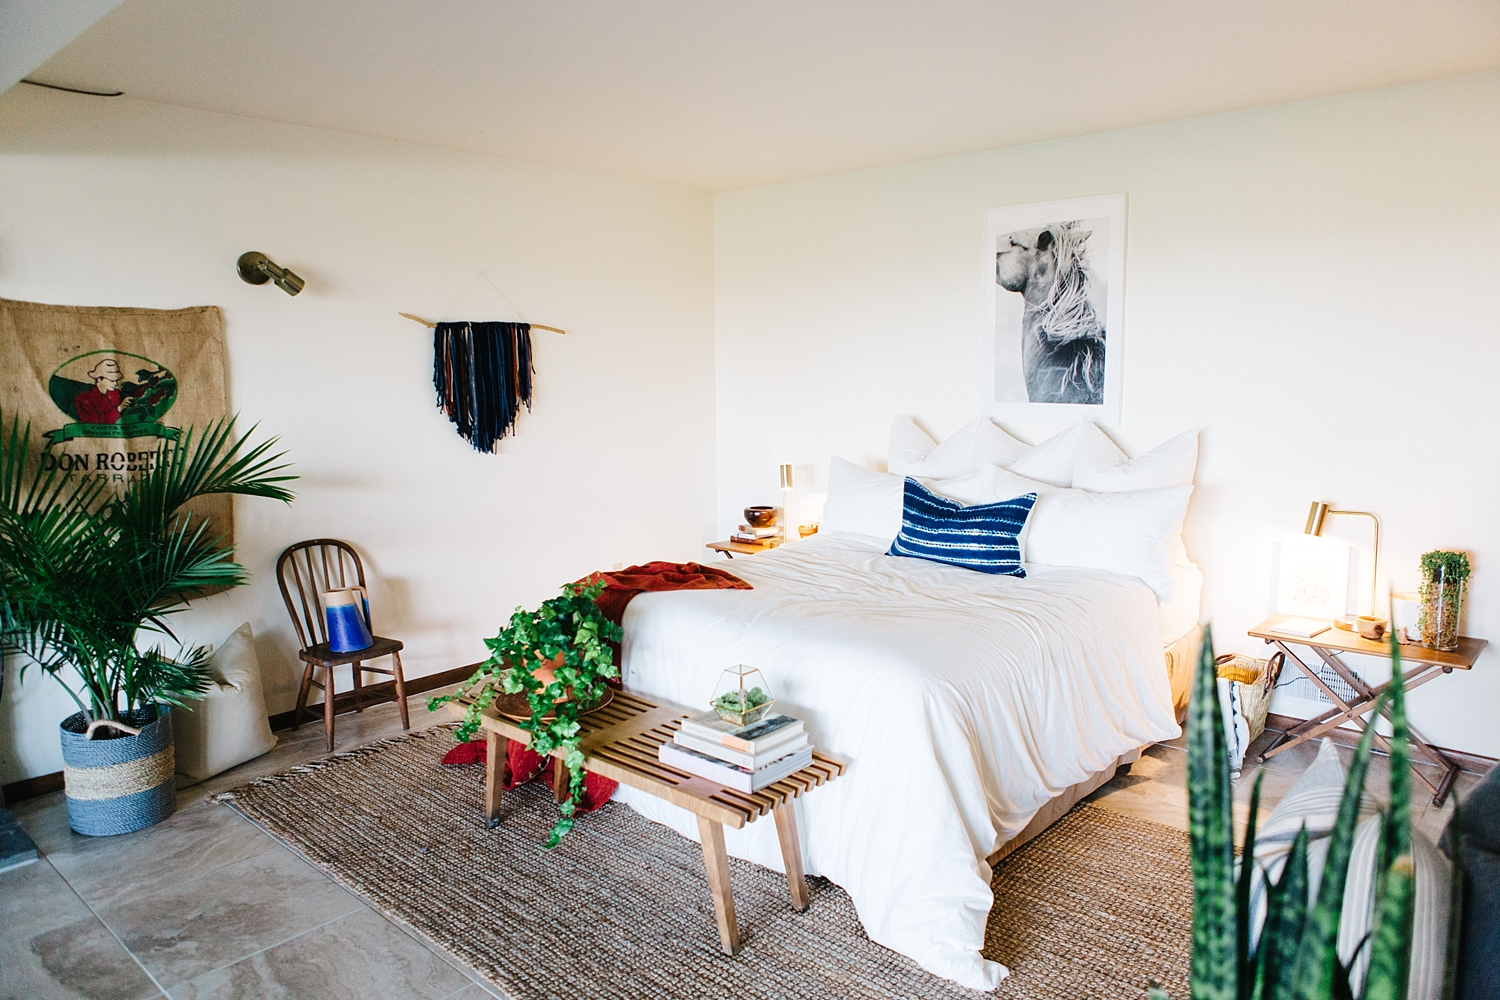 King sized white bedding on a queen size bed, houseplants, vintage furnishings, fun pops of color via textile, rugs, and beautiful art all work together to pull the Bohemian and Scandinavians styles together.